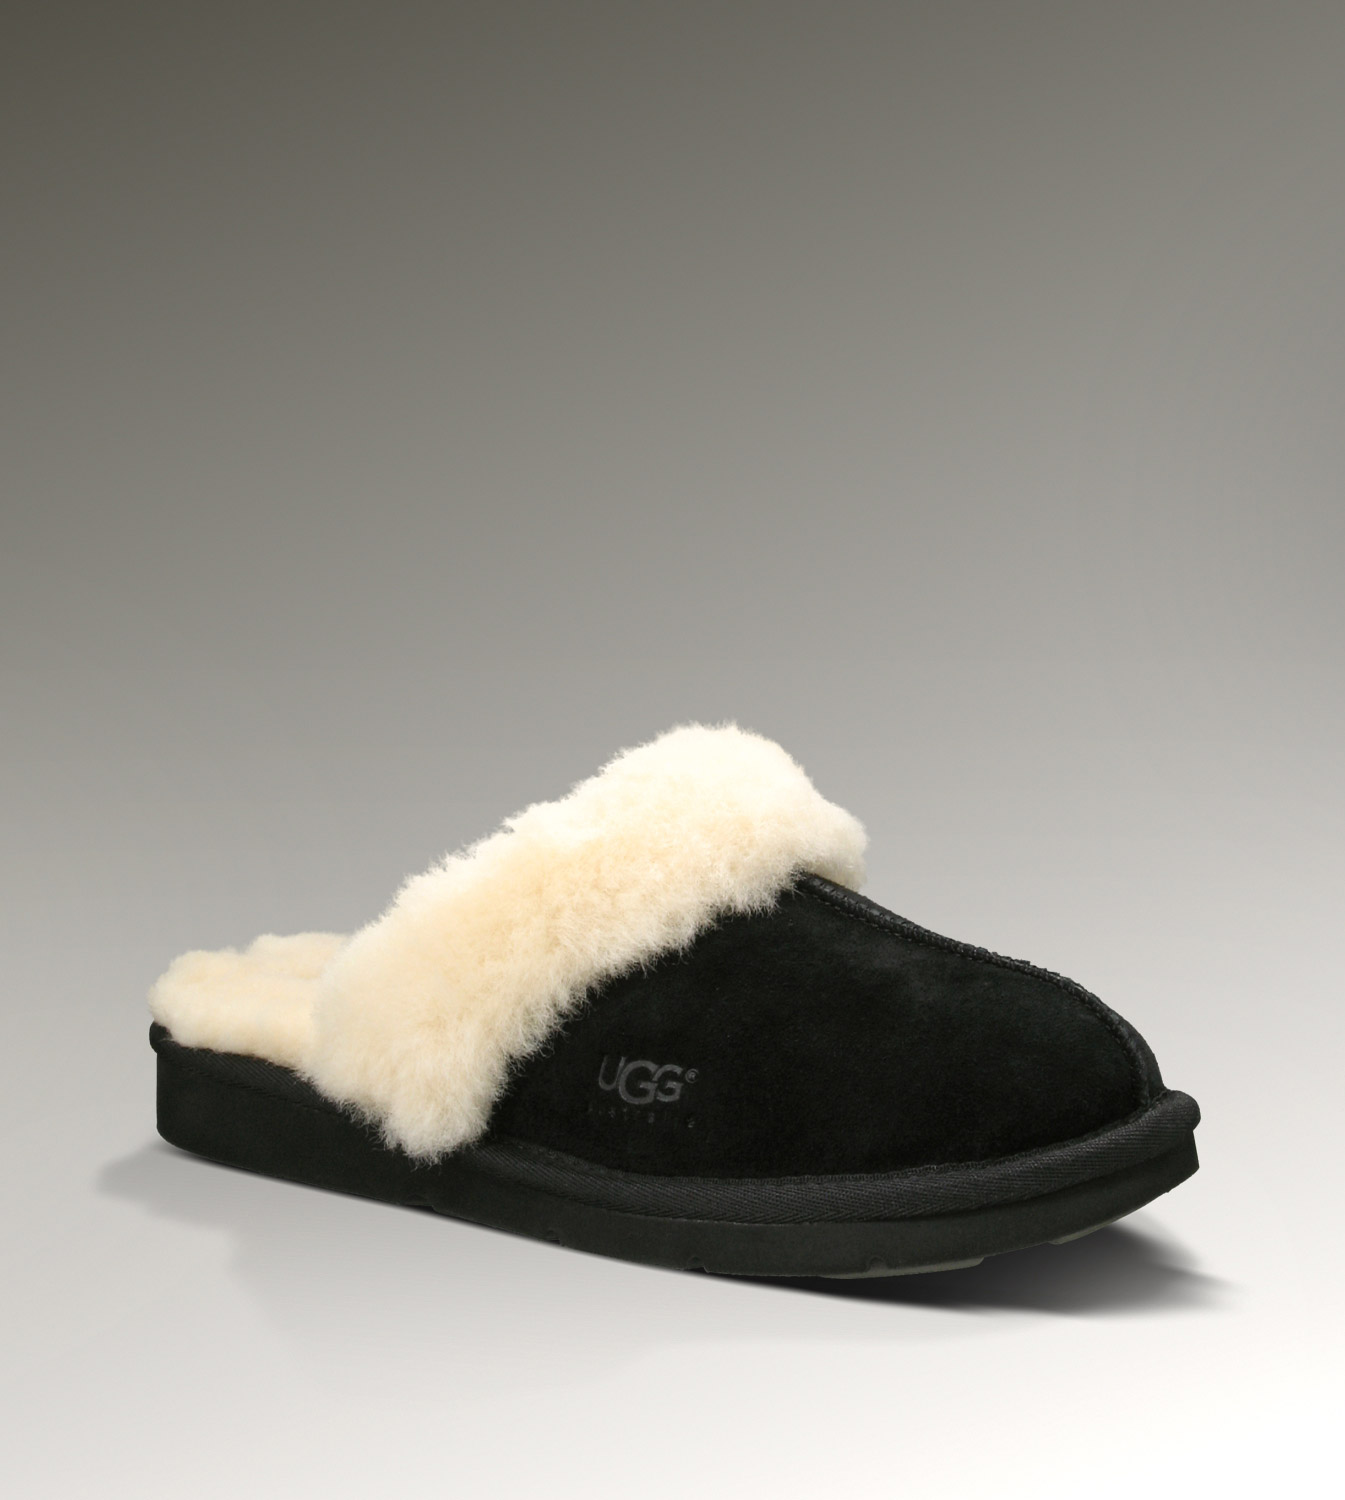 UGG Cozy II 5614 Black Slippers